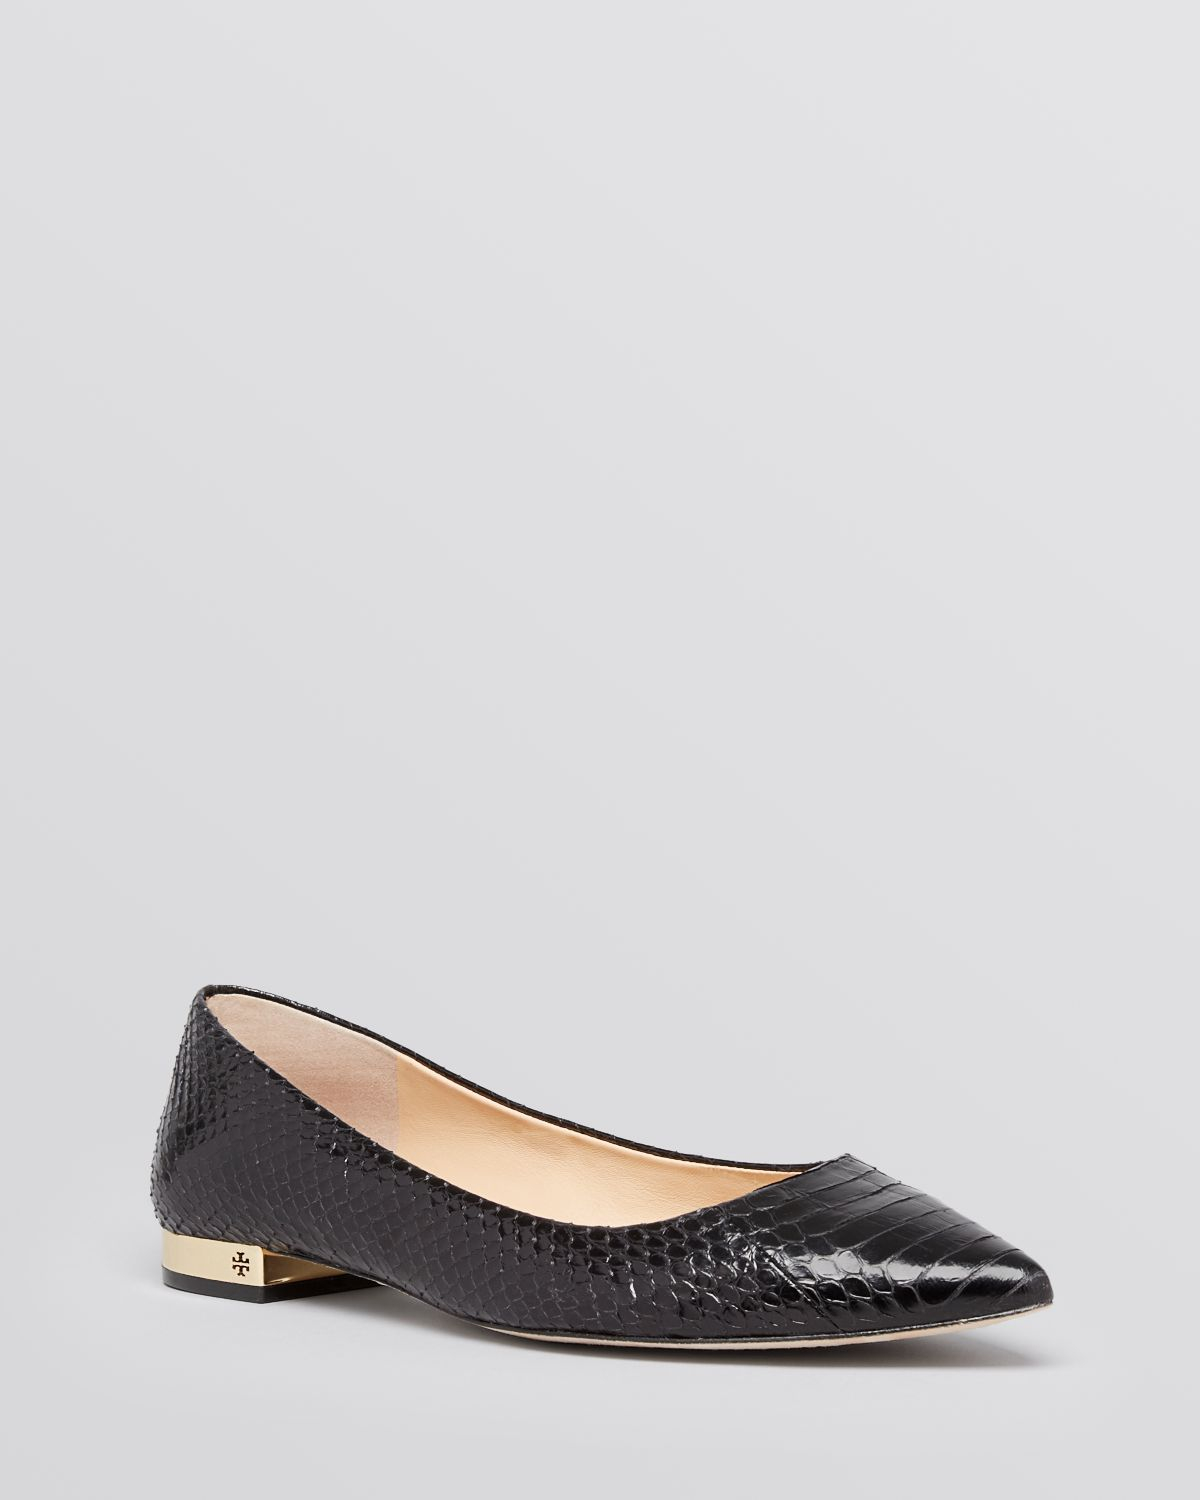 e3d2efb0d80 Tory Burch Pointed Toe Flats - Bedford Snakeskin in Black - Lyst